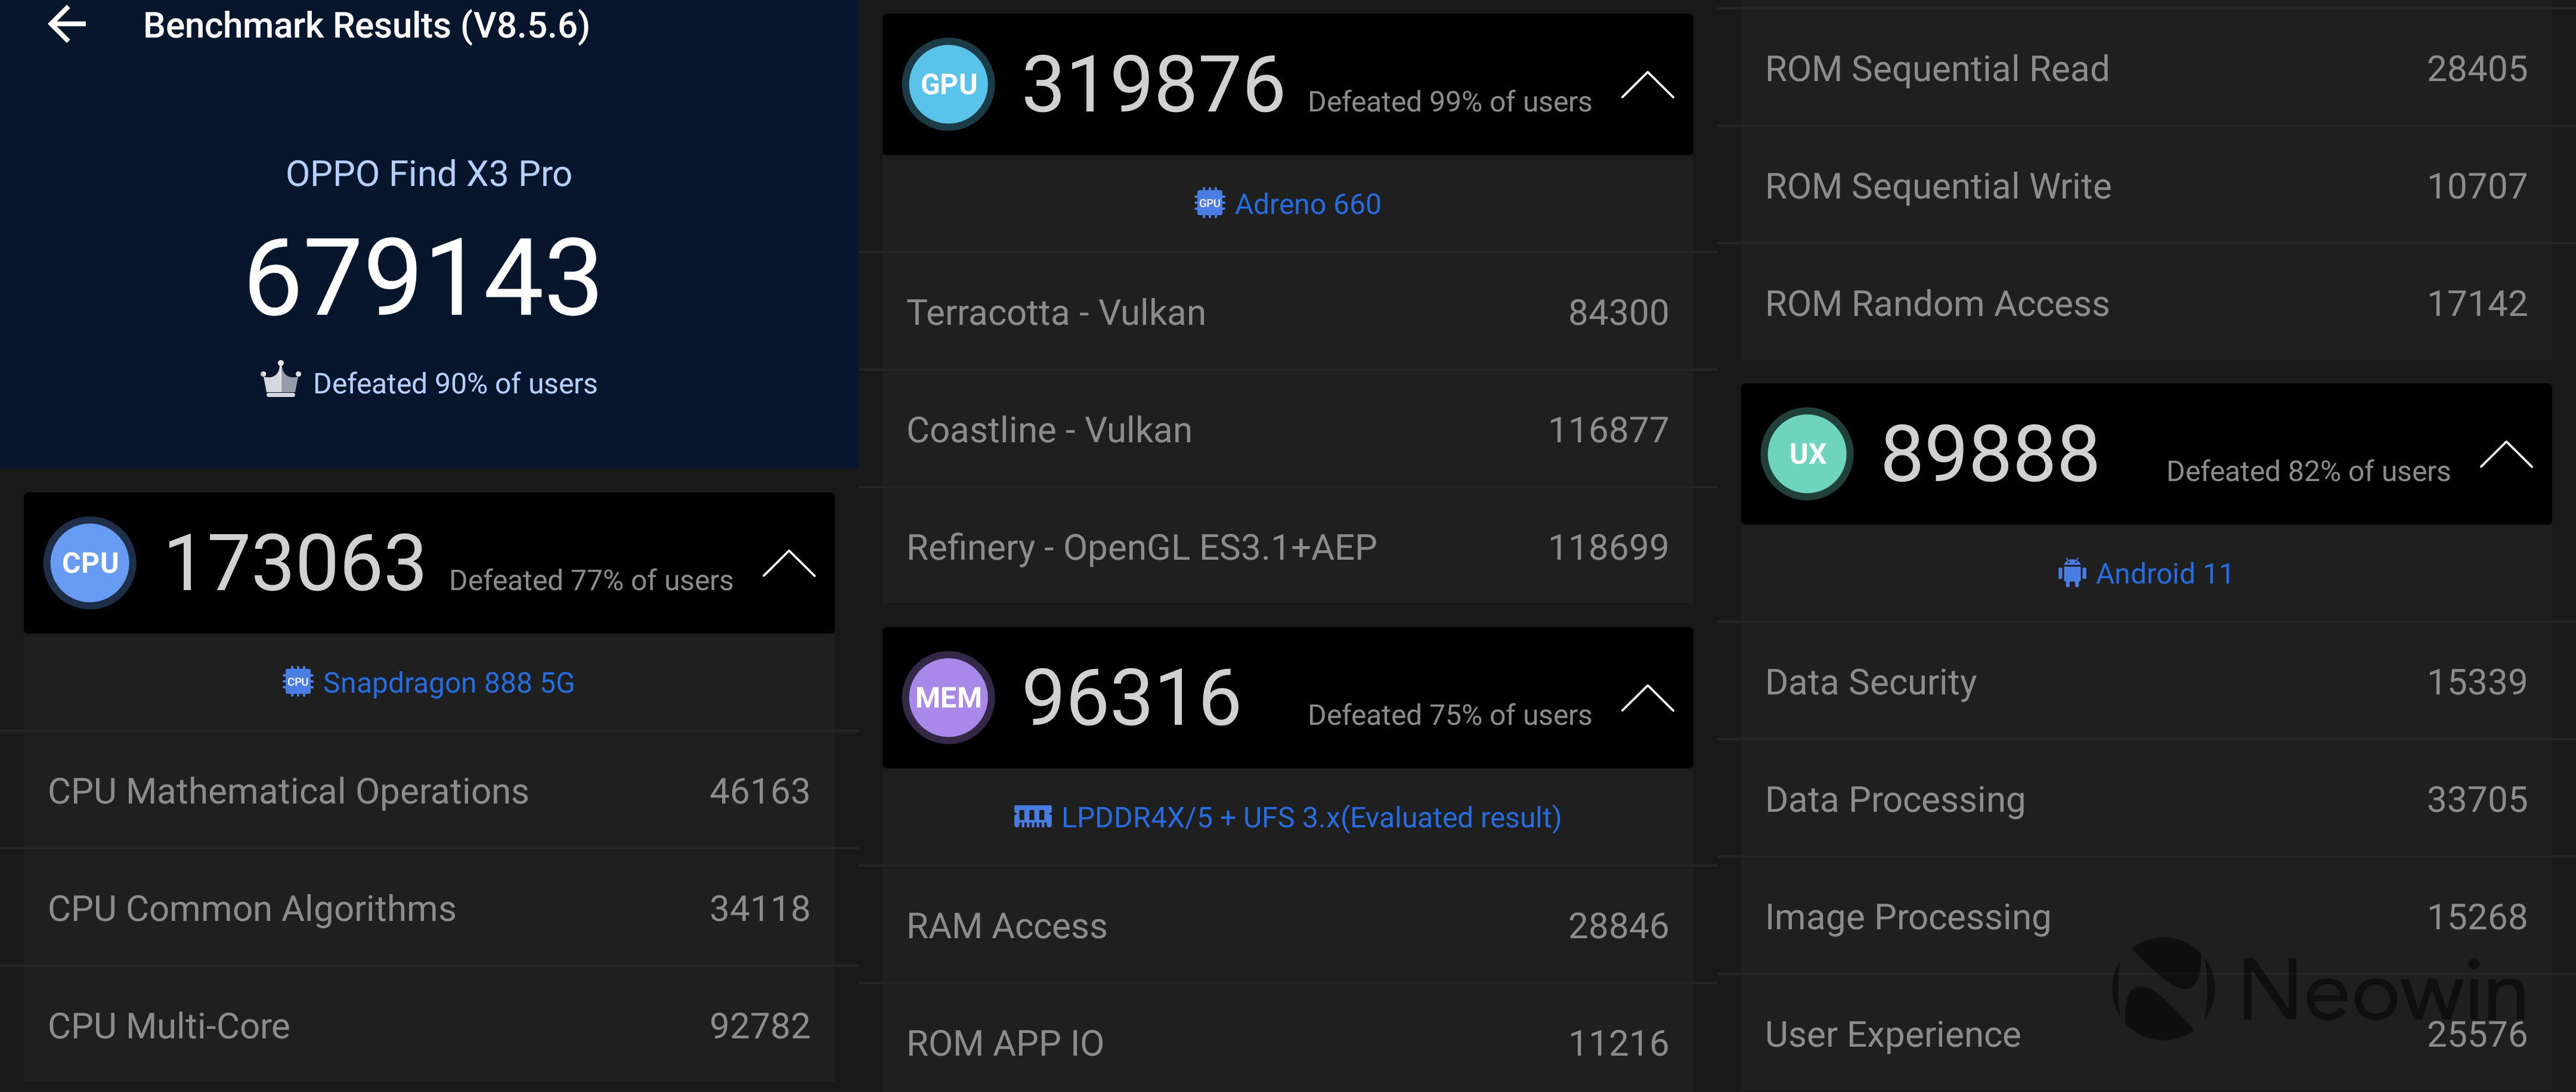 Screenshots of OPPO Find X3 Pro benchmarks